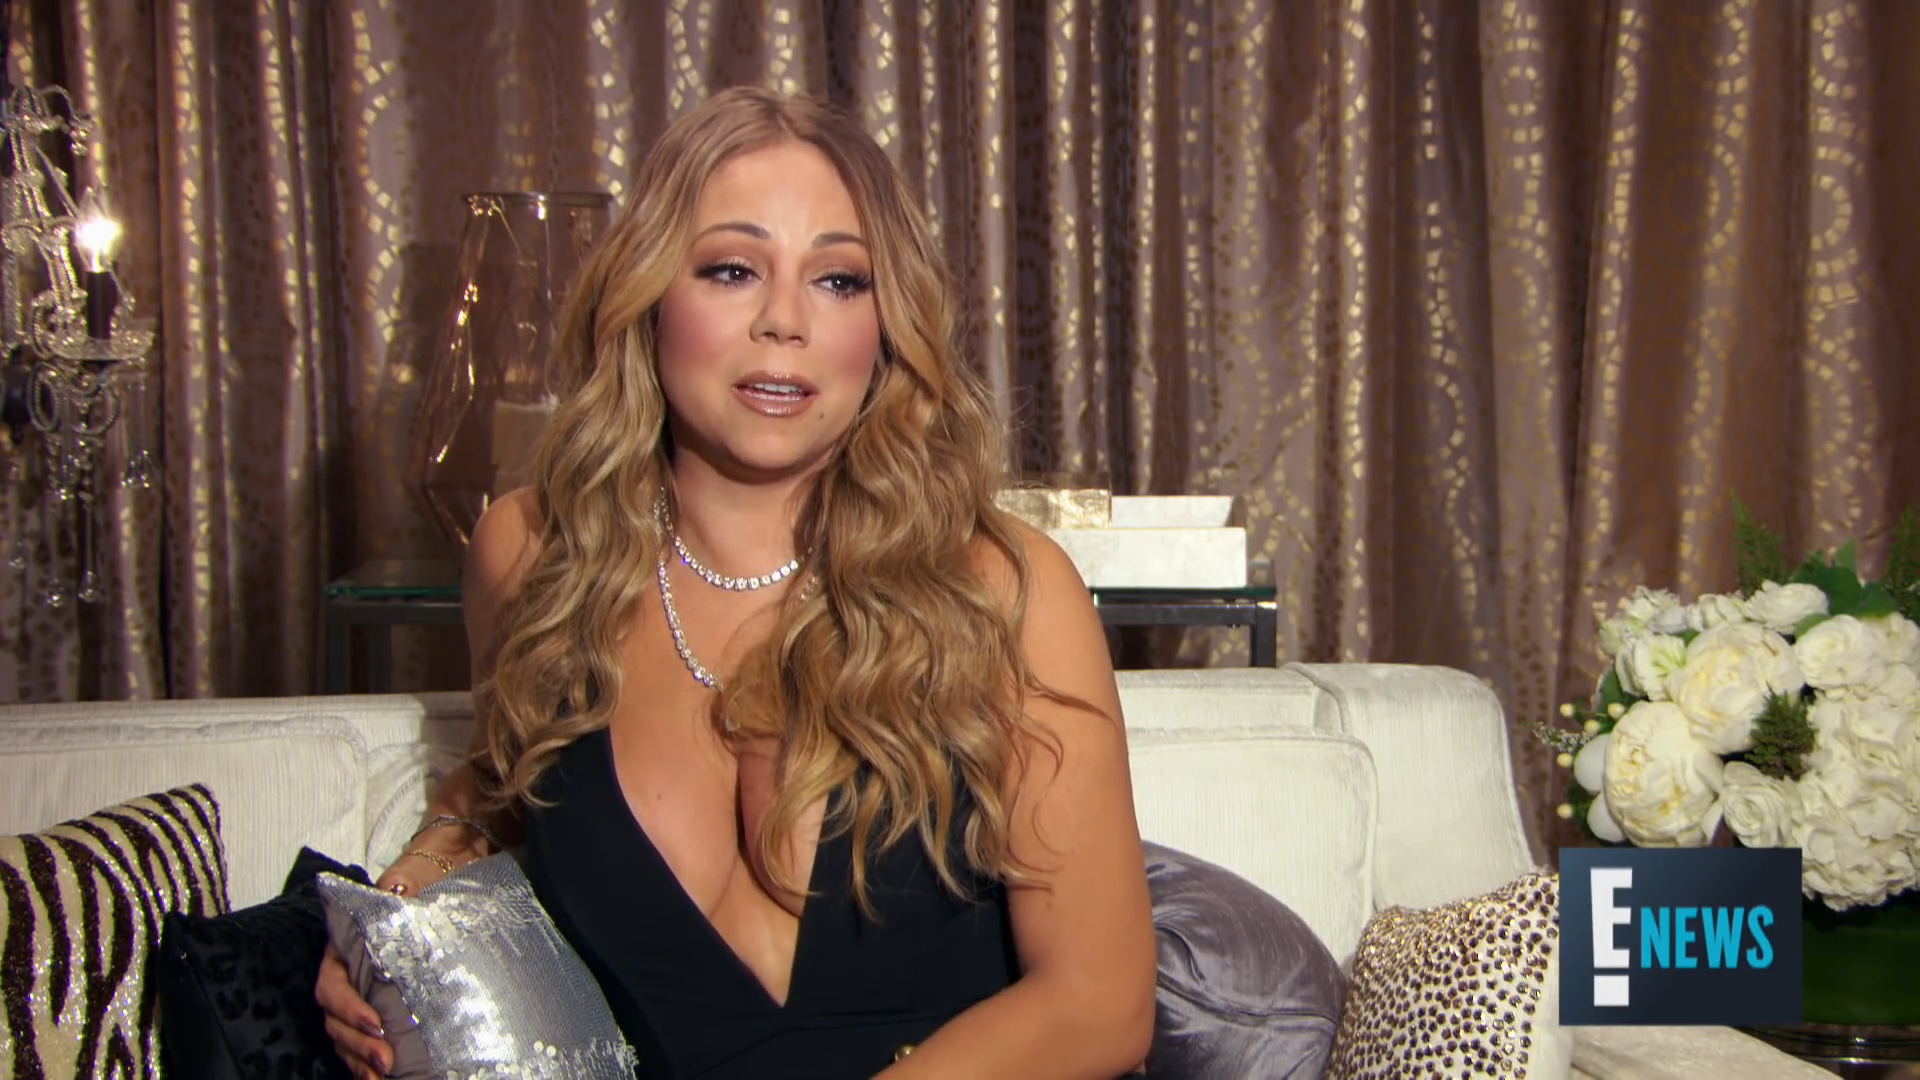 Mariah Carey says she's moved on from James Packer